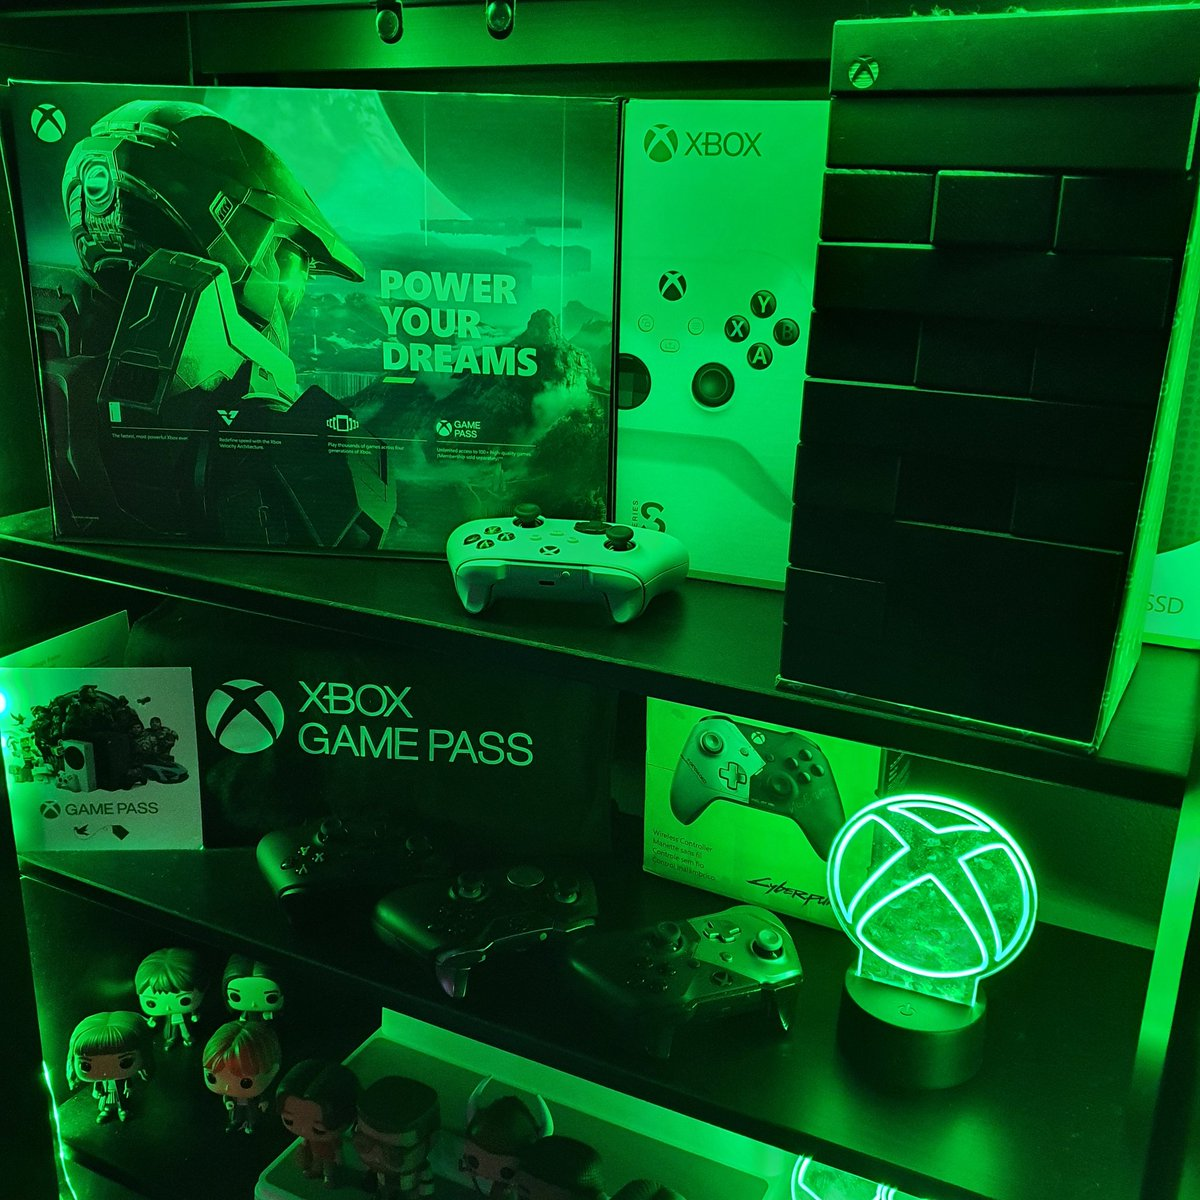 Reorganising the studio.  Of course @xbox has it's own special place!  #PowerYourDreams